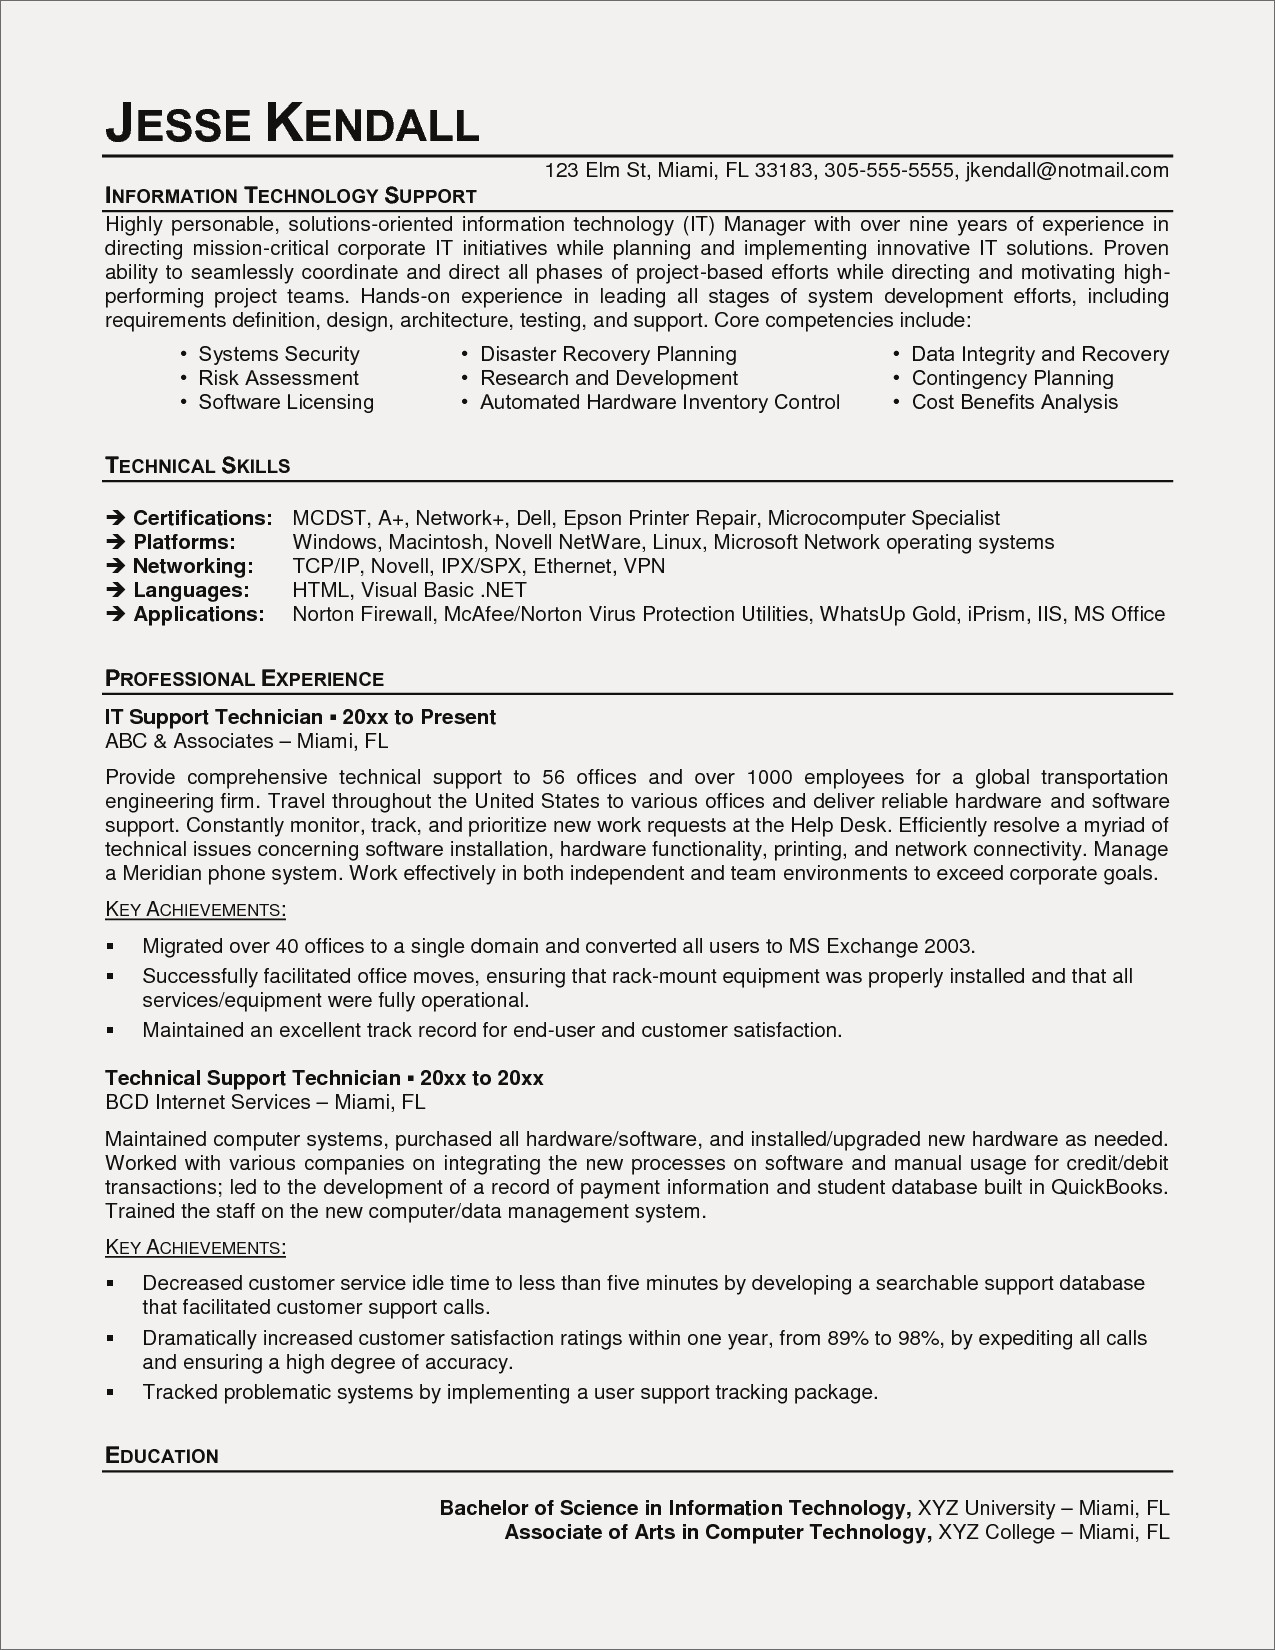 Resume Template for Undergraduate Student - Students Resume Samples Valid Auto Mechanic Resume American Resume